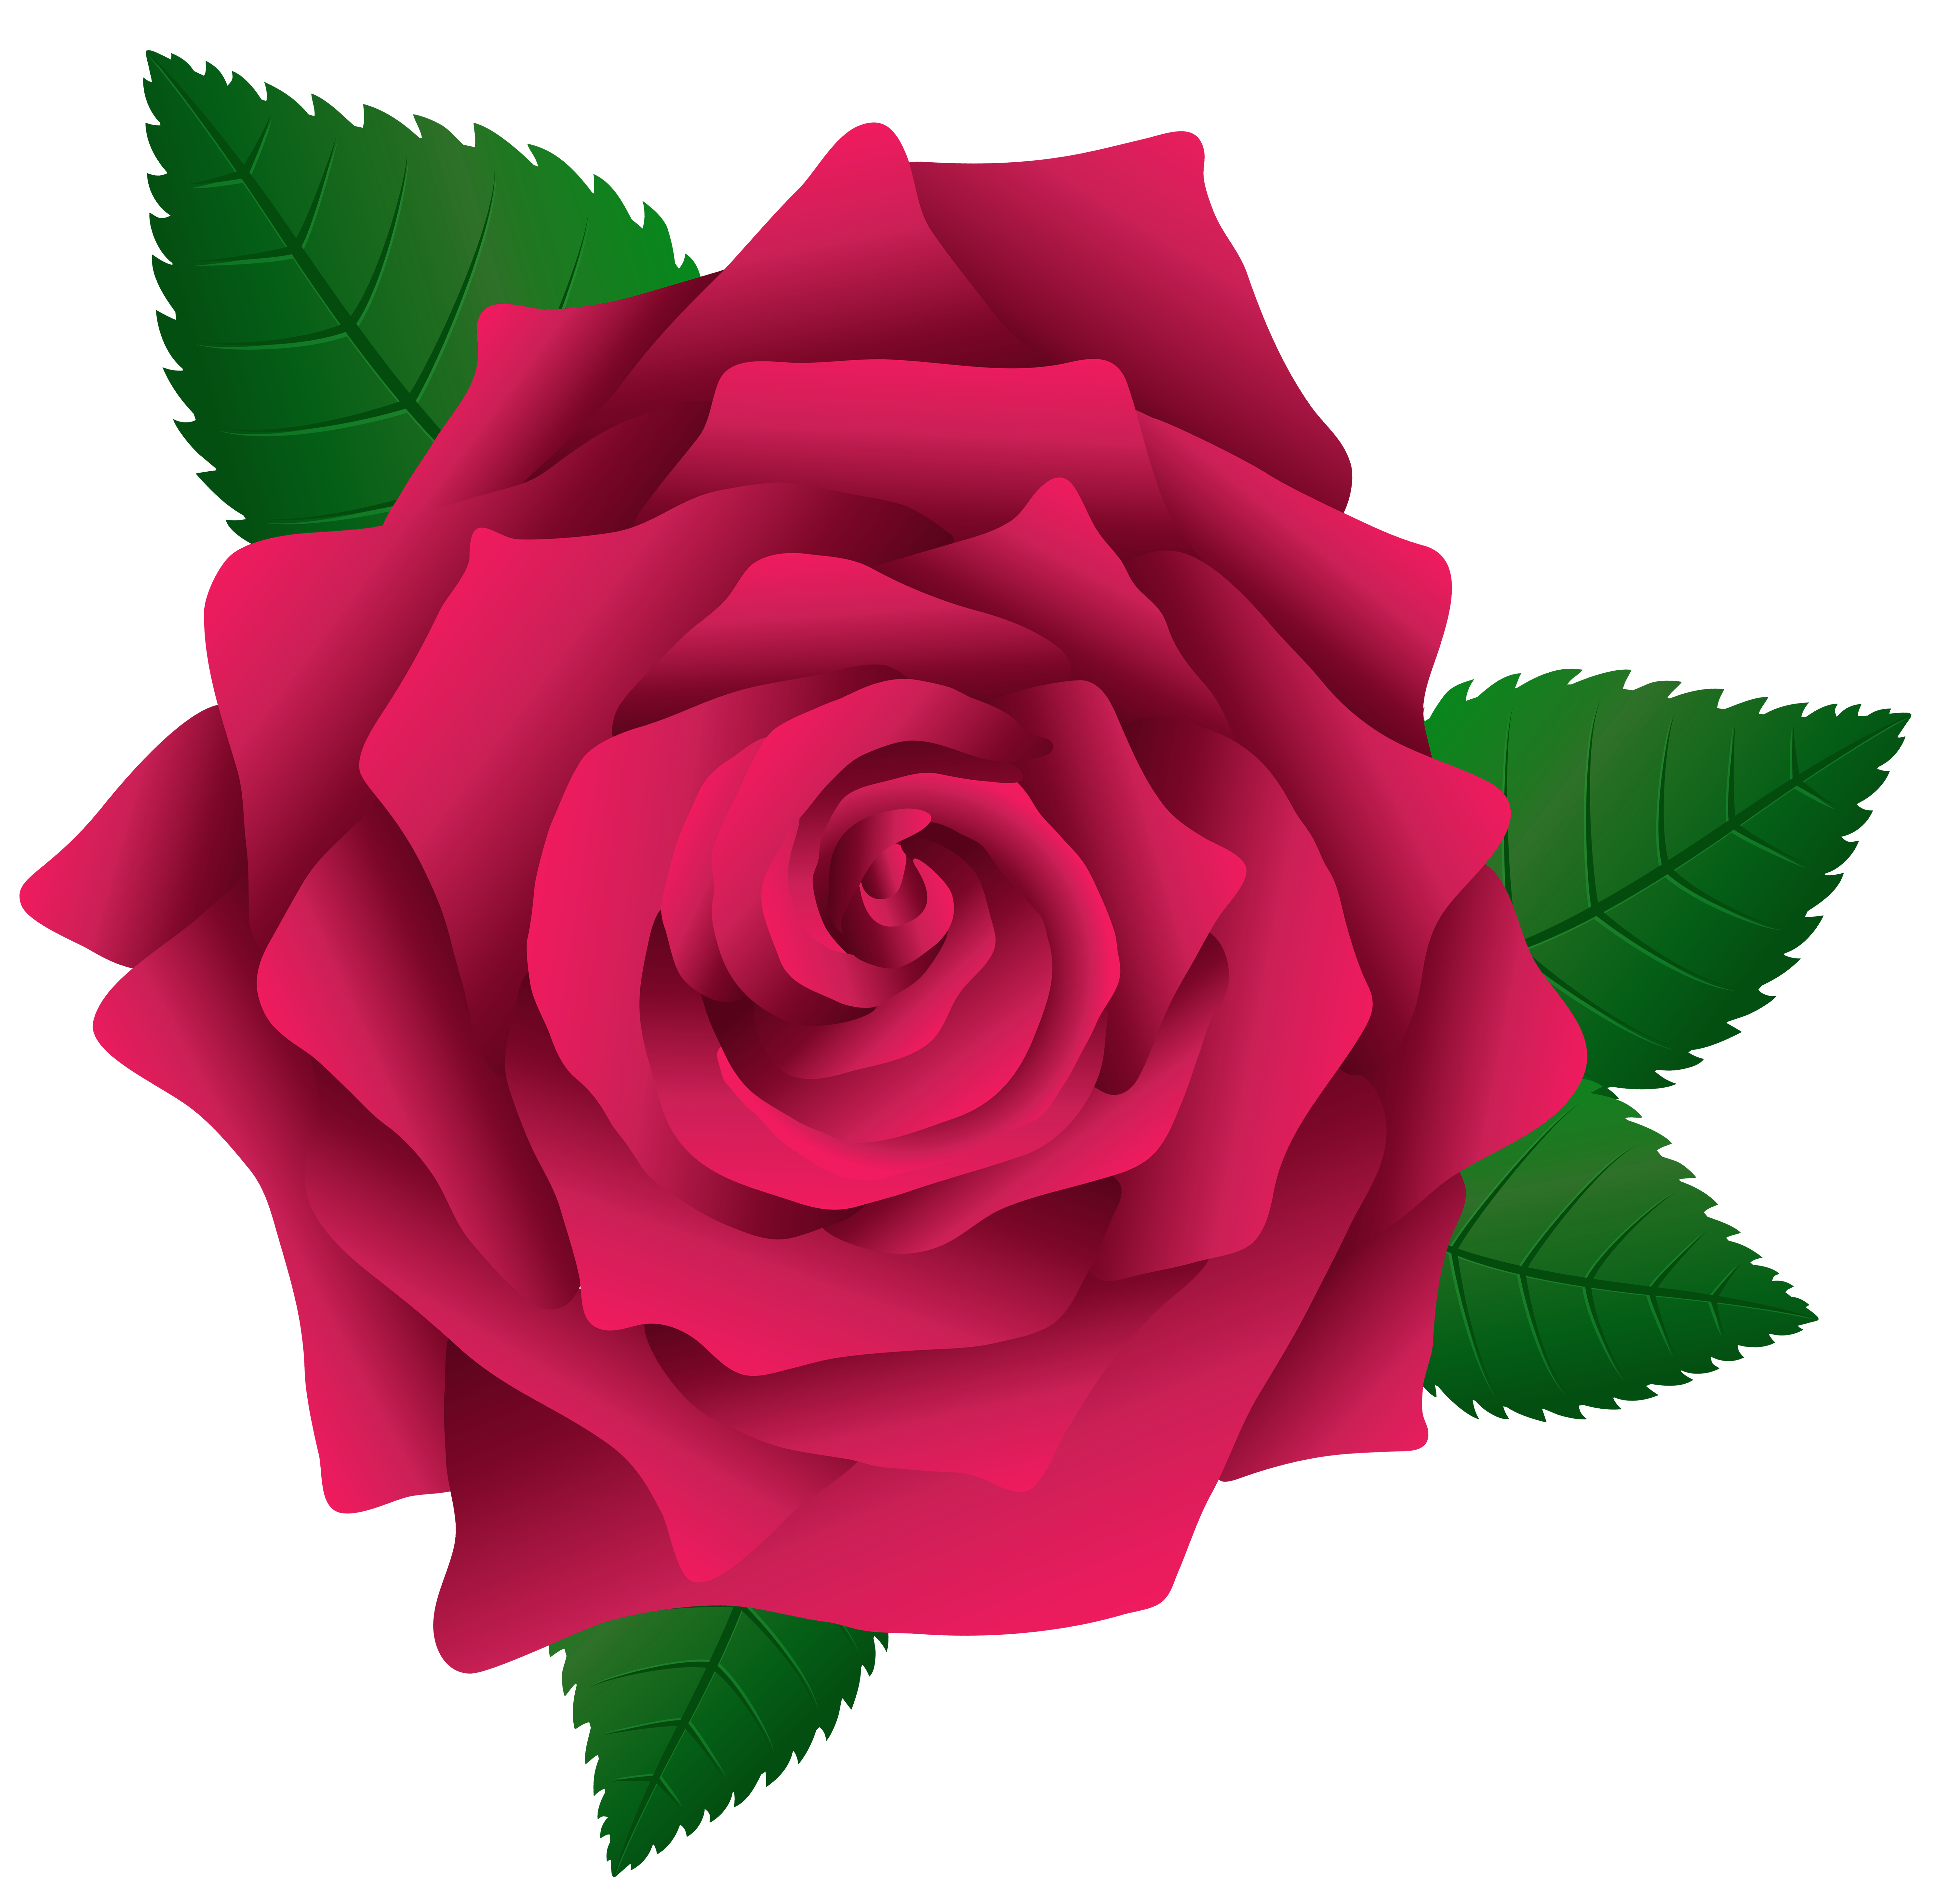 Pink Rose PNG Image Clipart.